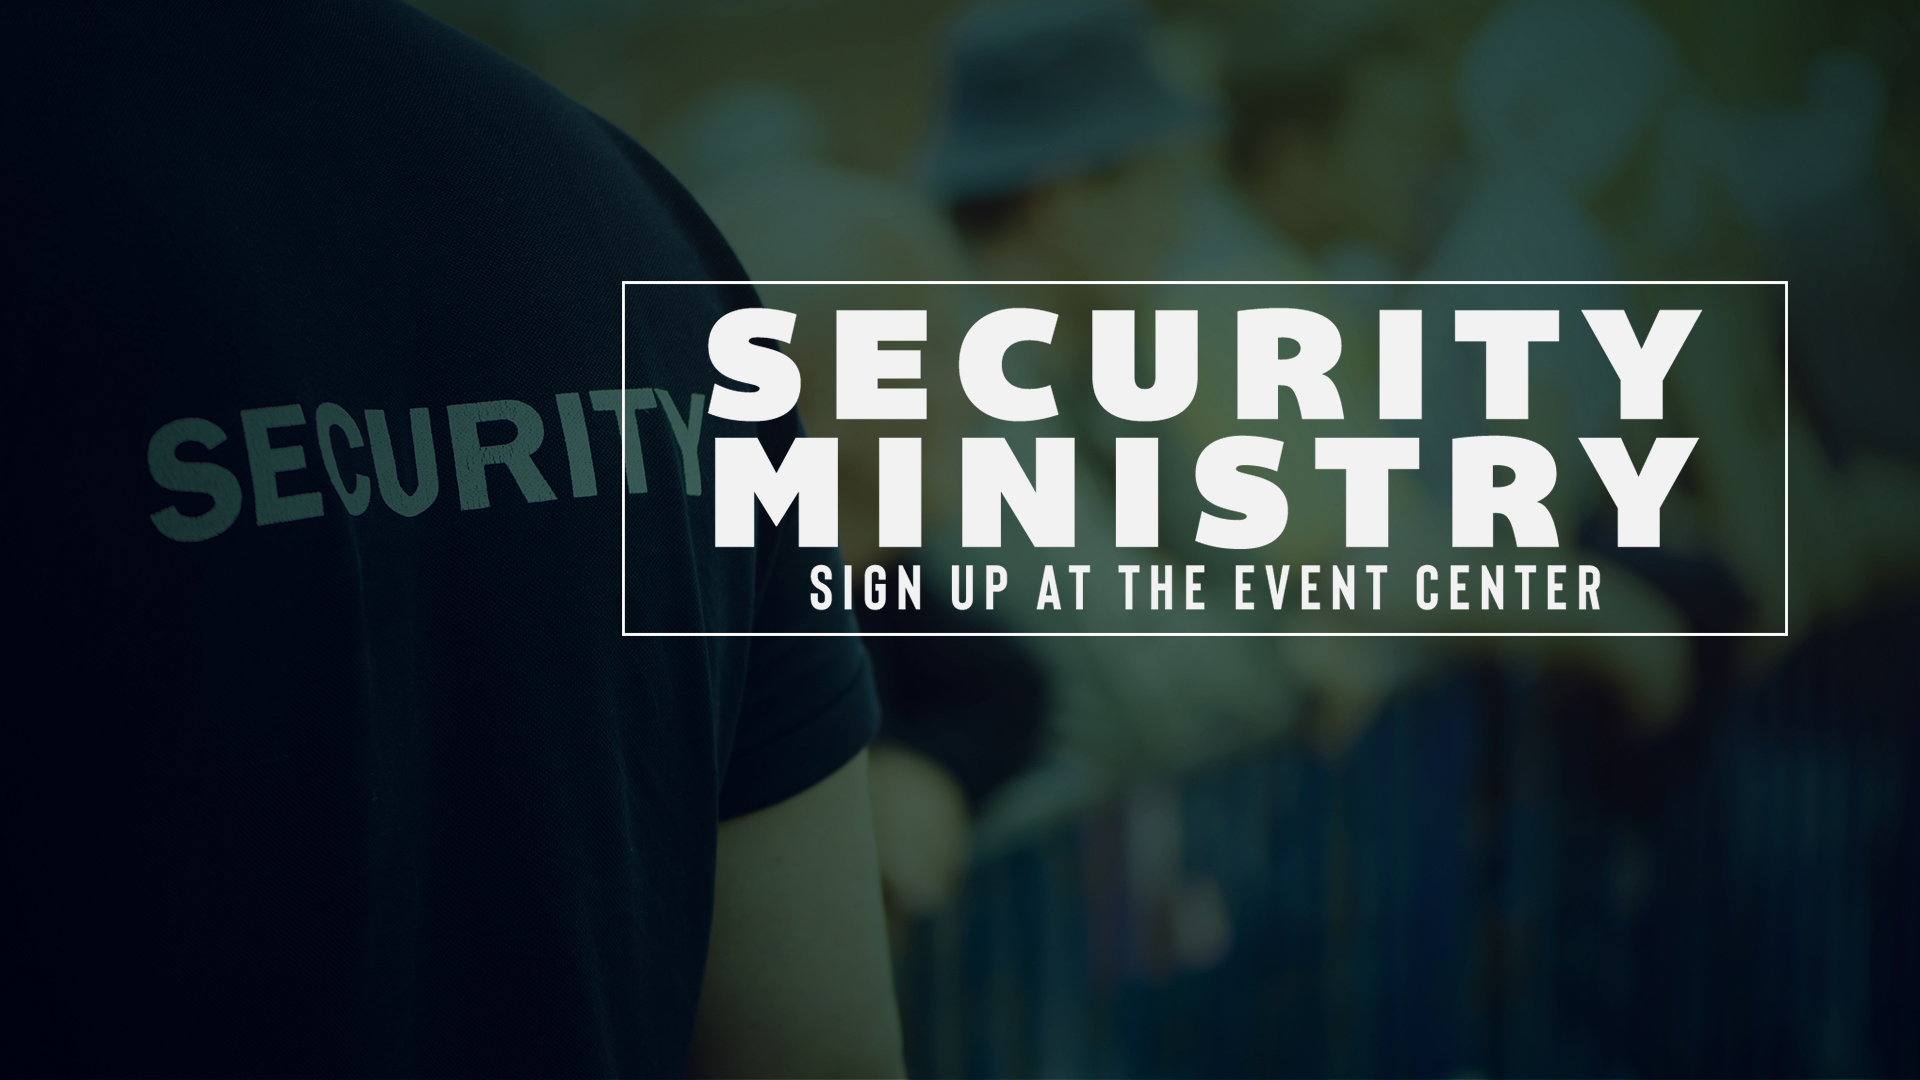 Security Ministry HD Title Slide.jpg